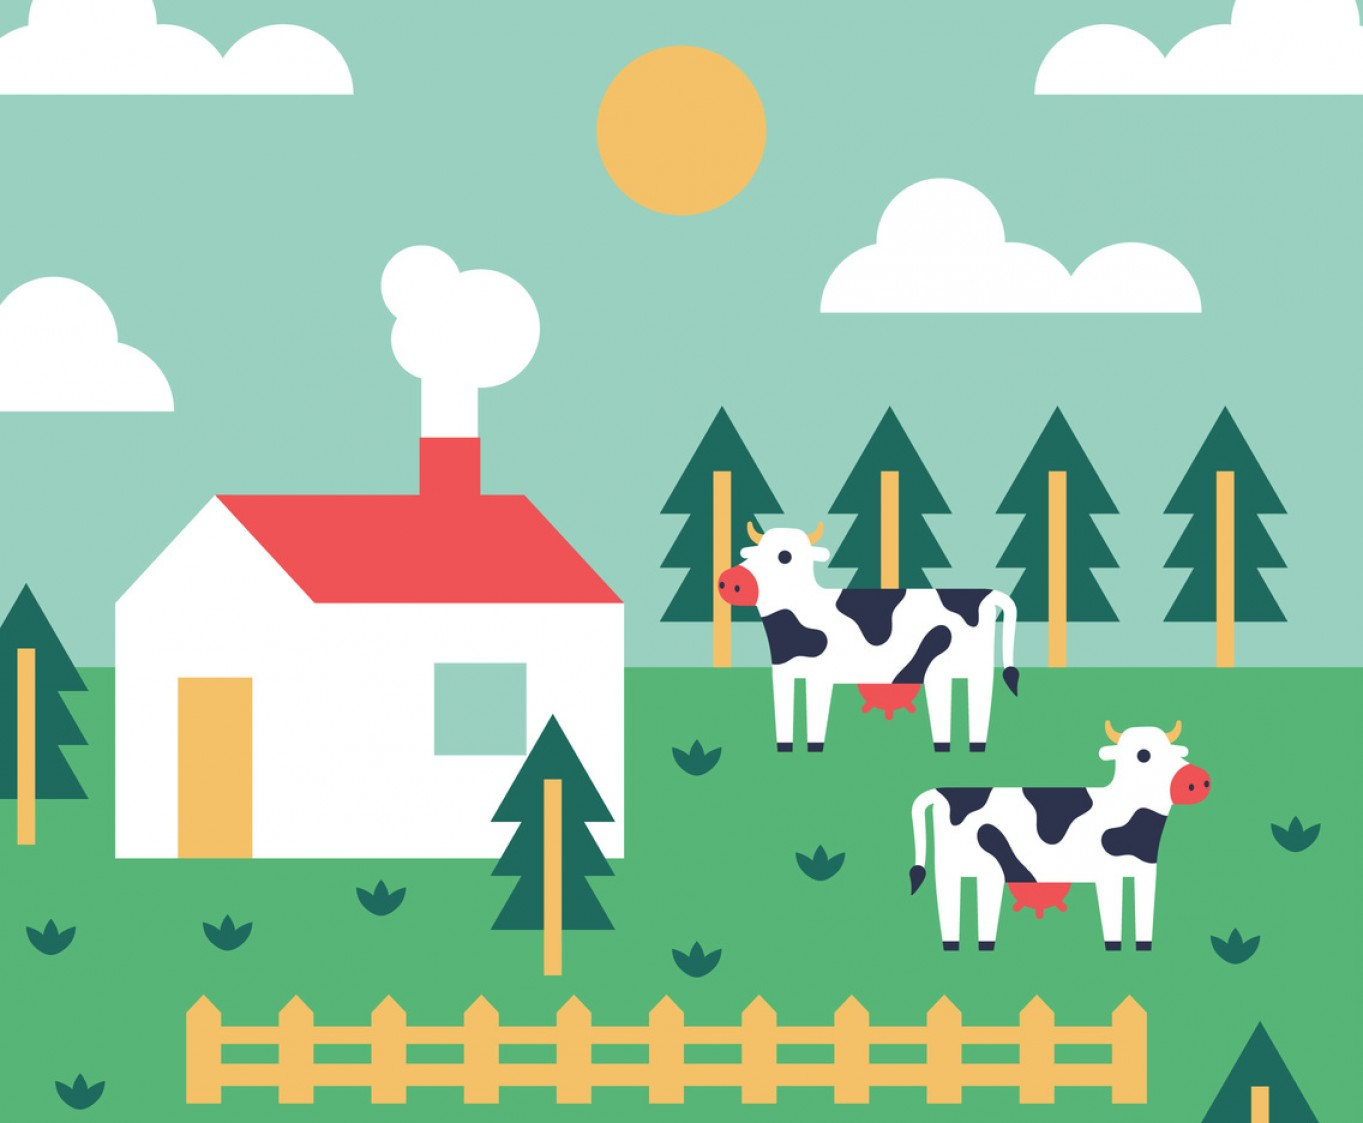 Farm Vector Illustration: Colorful Farm Vector Background